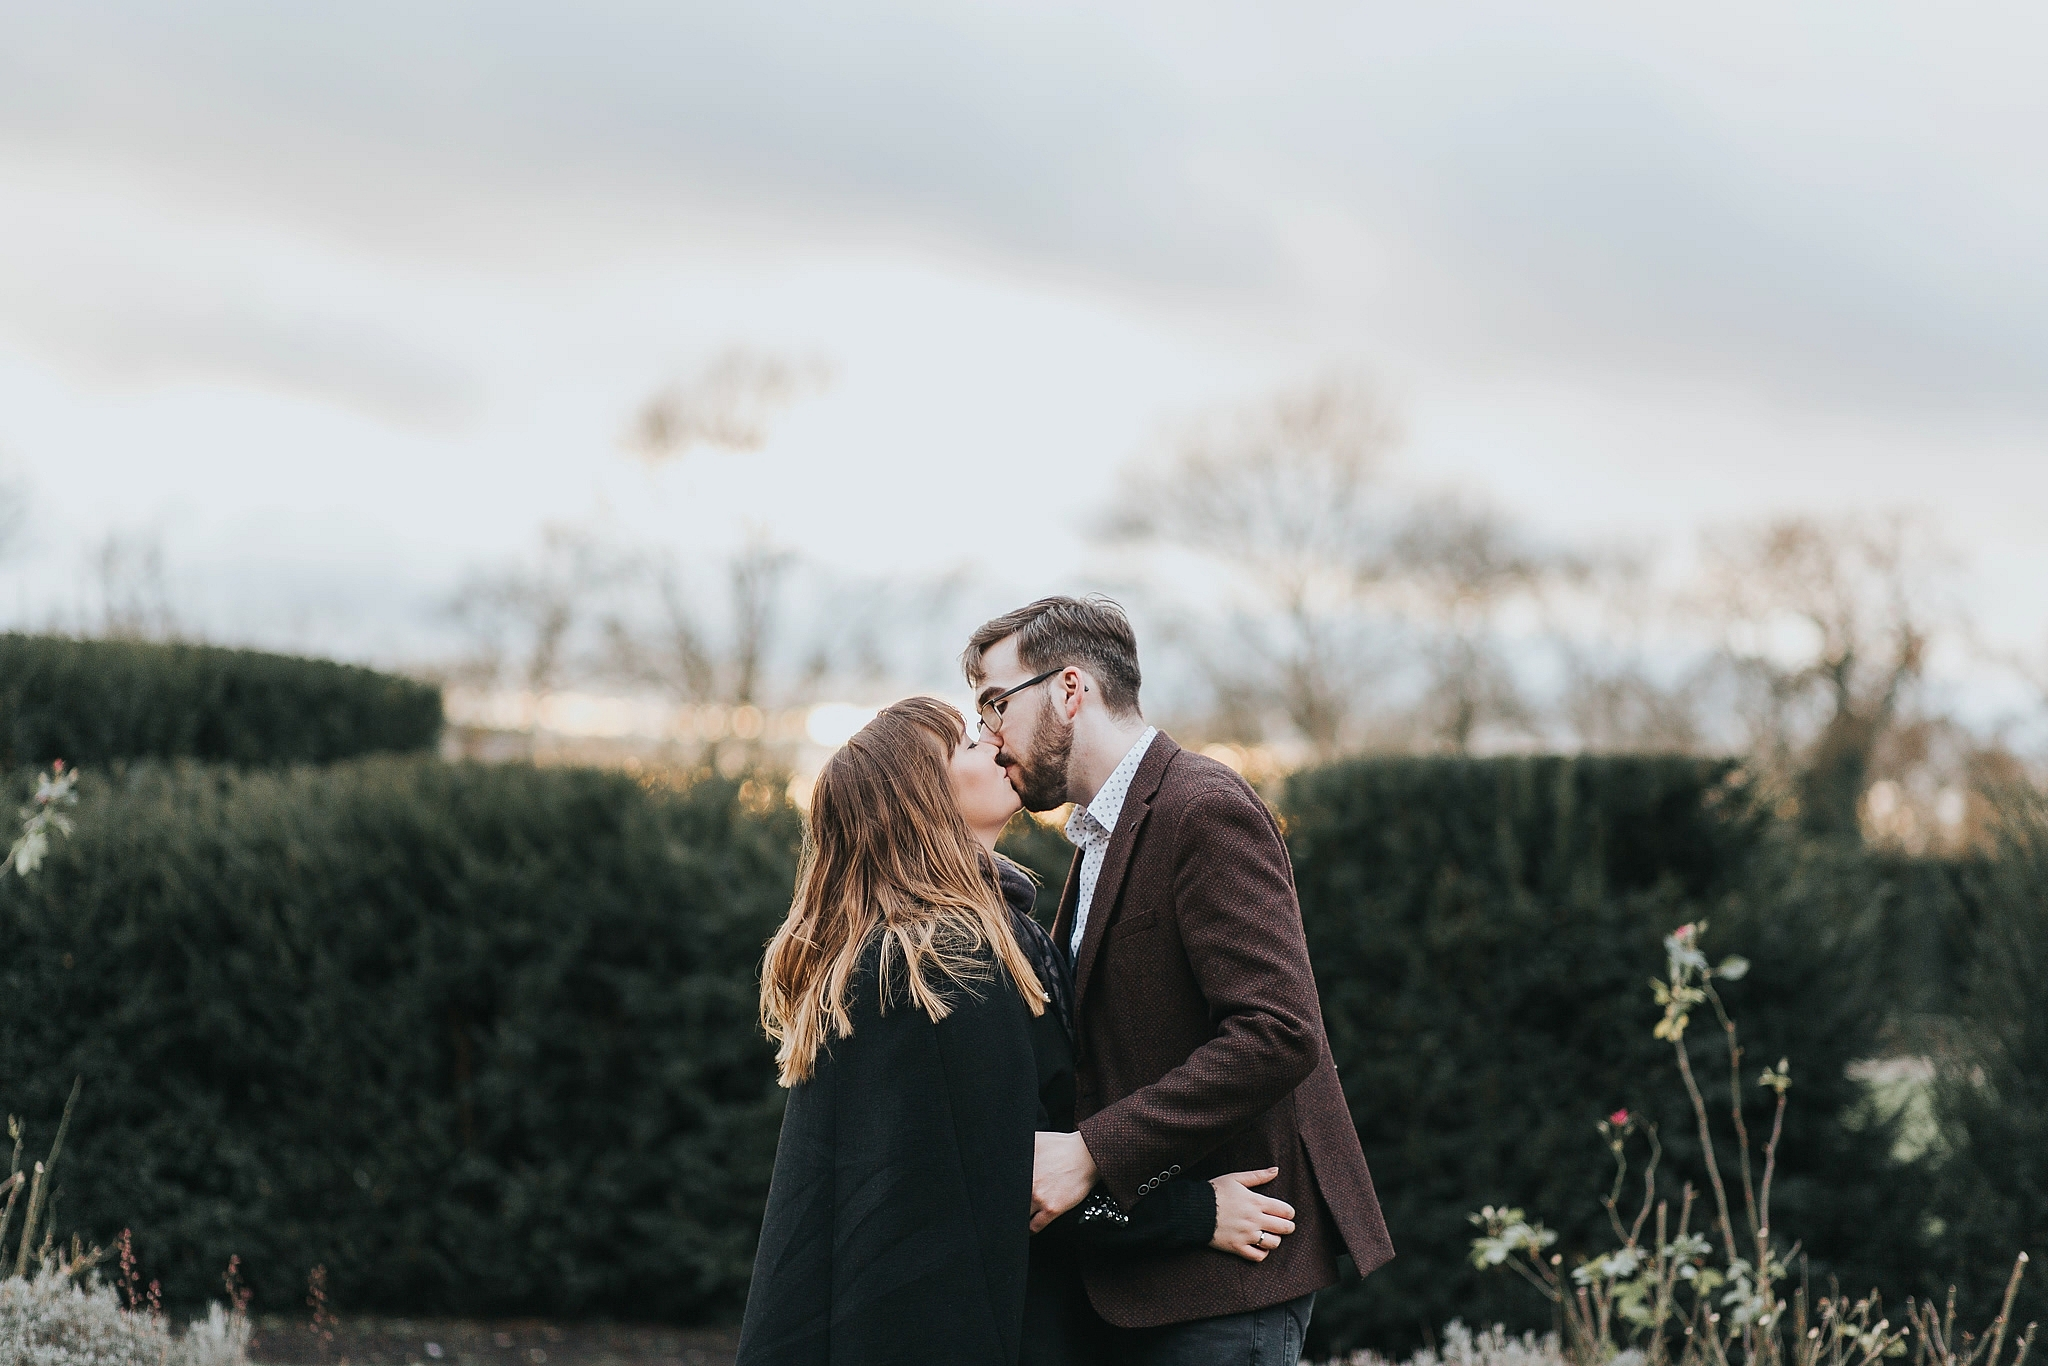 Port Lympne Photography engagement photographer kent Emily Crutcher 26